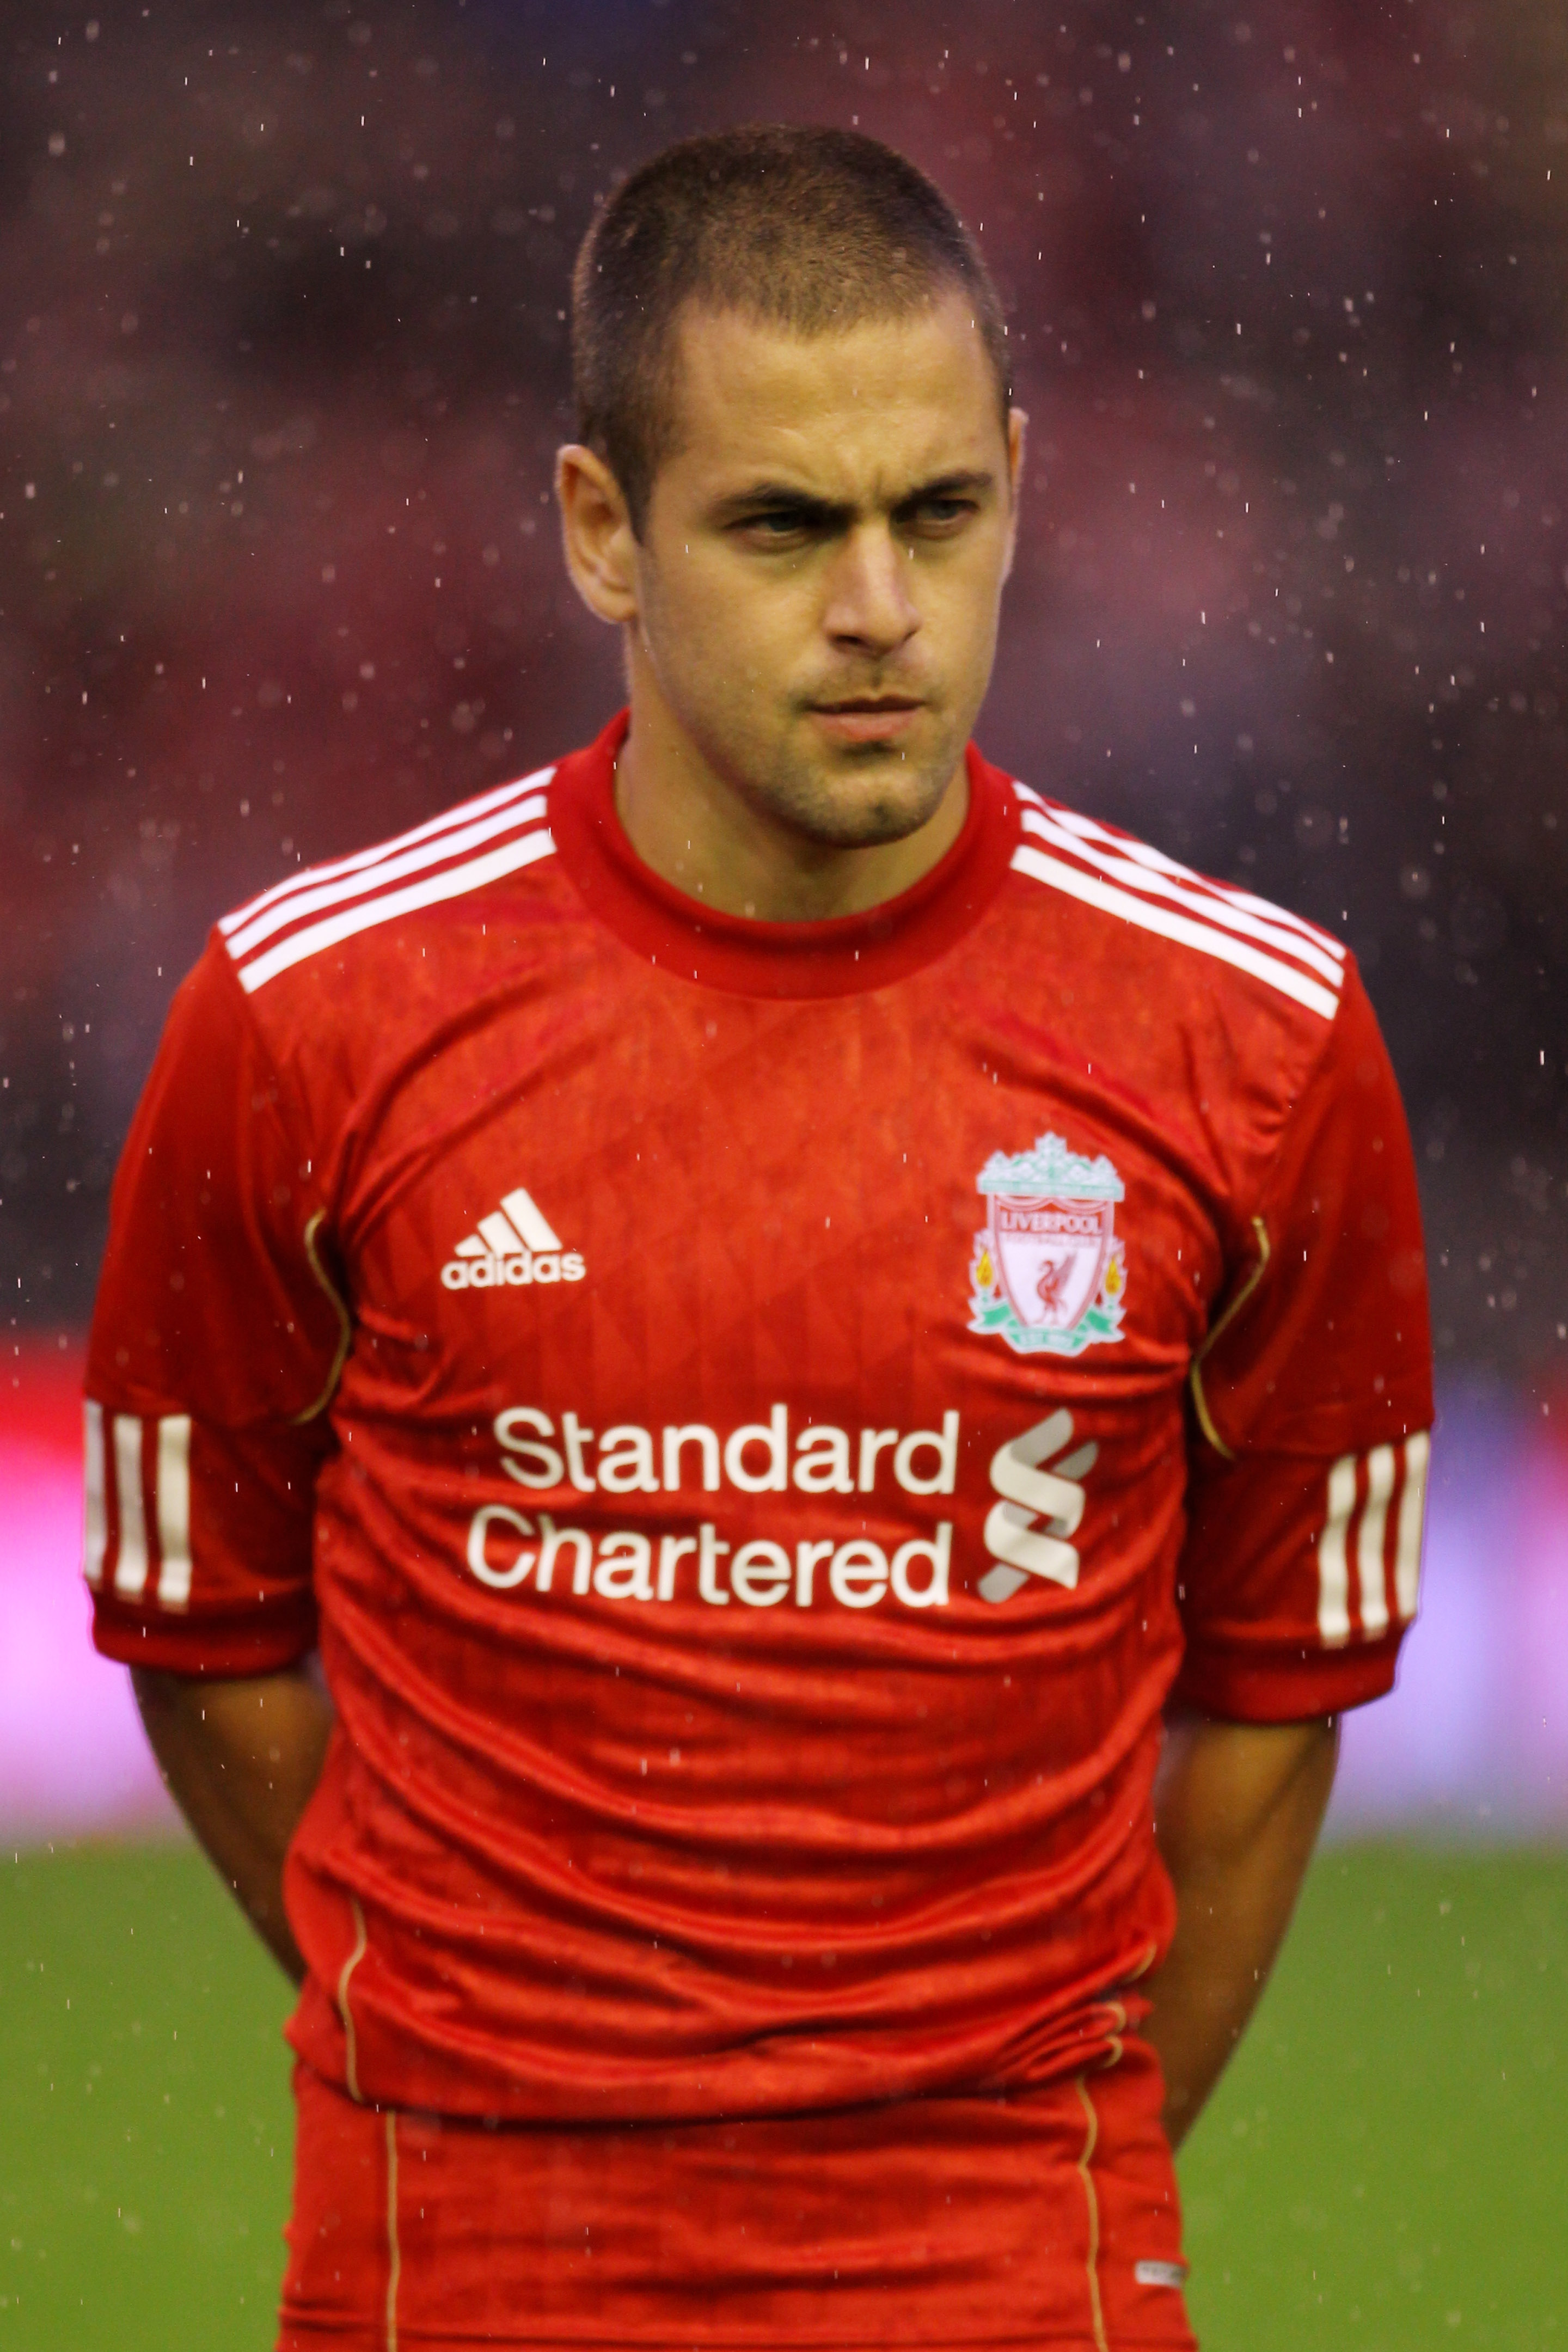 LIVERPOOL, ENGLAND - AUGUST 19:  Joe Cole of Liverpool looks on prior to the UEFA Europa League play-off first leg match beteween Liverpool and Trabzonspor at Anfield on August 19, 2010 in Liverpool, England.  (Photo by Alex Livesey/Getty Images)